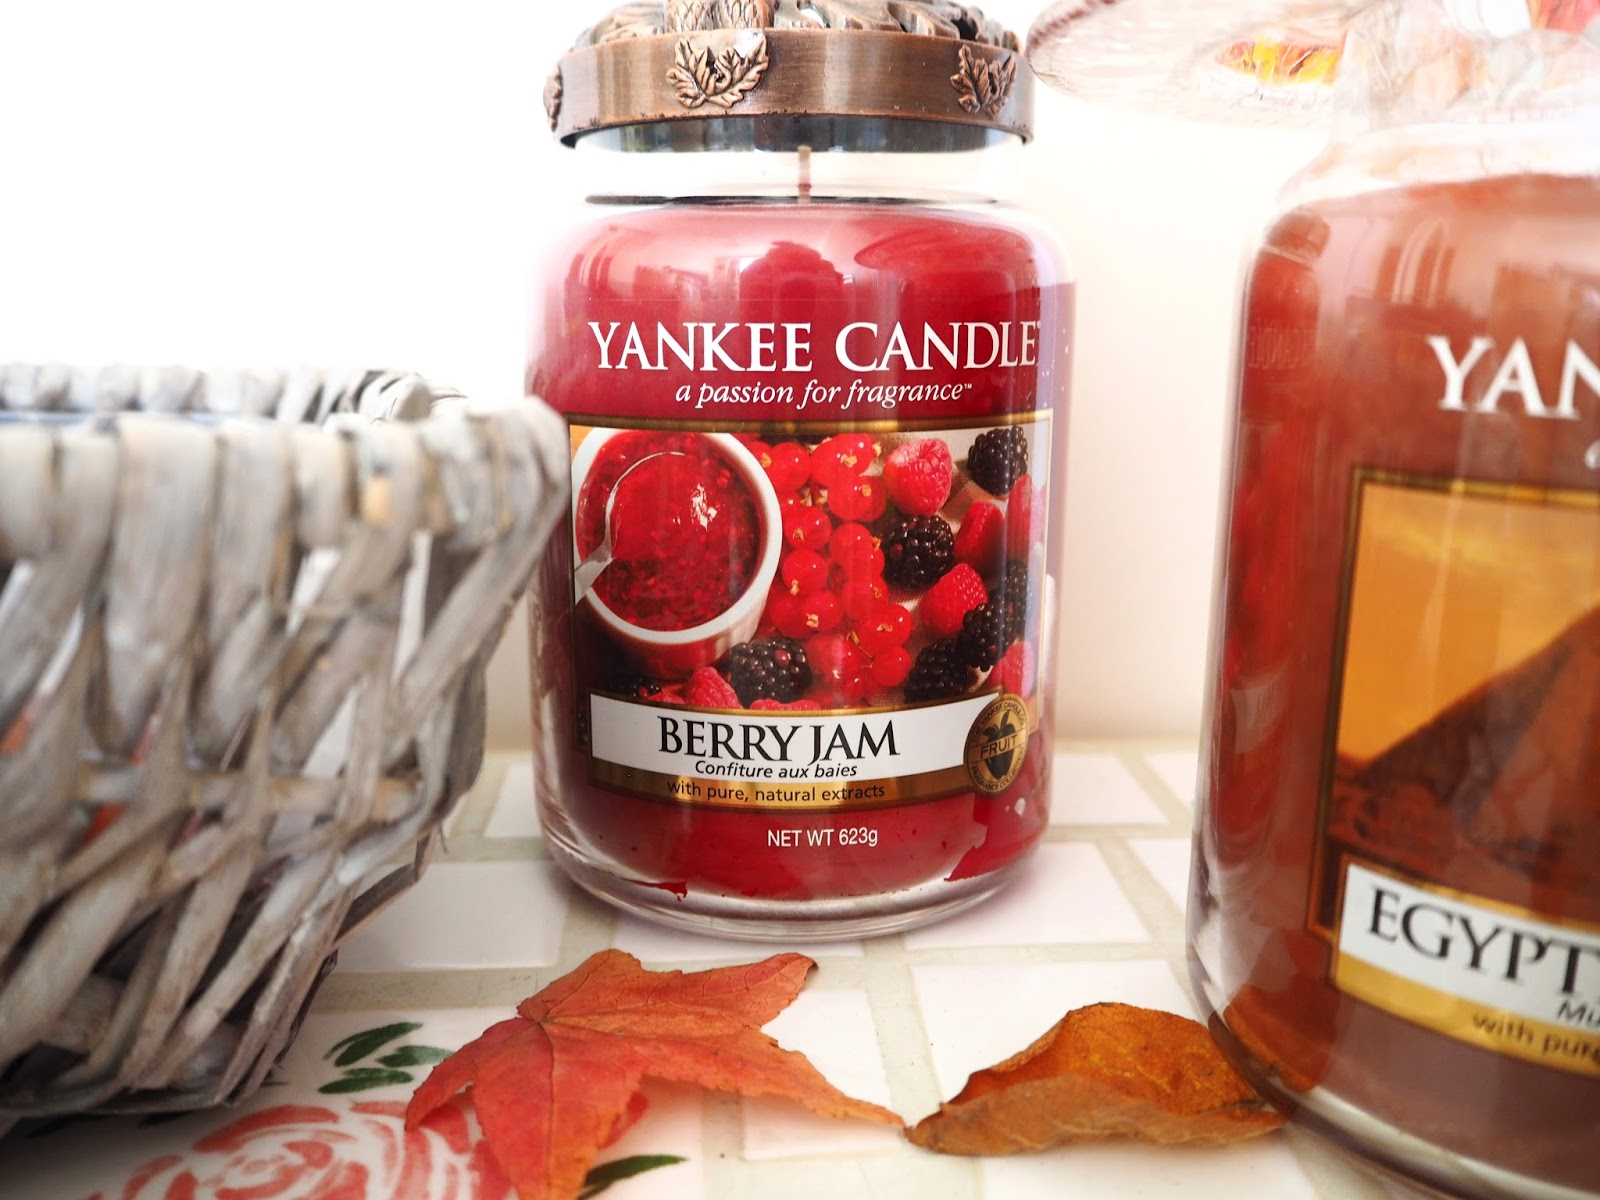 Candles I'm Burning This Autumn, Katie Kirk Loves, Yankee Candles, Bath & Bodyworks Candles, Flamingo Candles, Autumn Candles, Pumpkin Candles, Autumn Decor